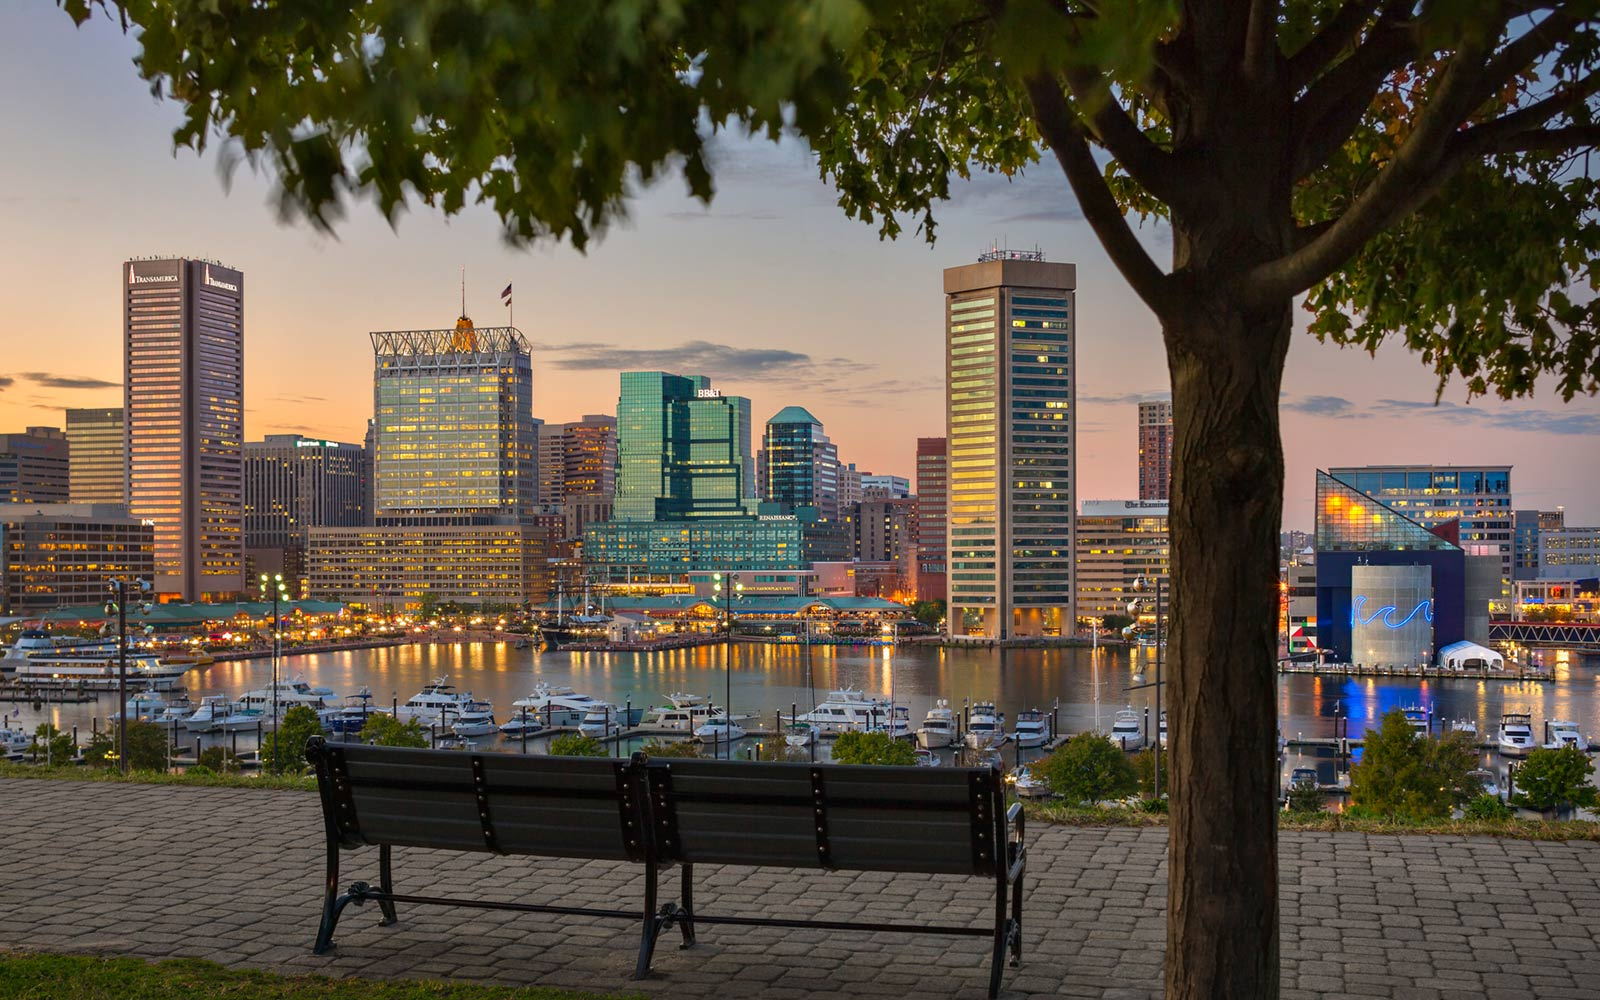 Federal Hill Park Benches and View of Downton Baltimore, Maryland